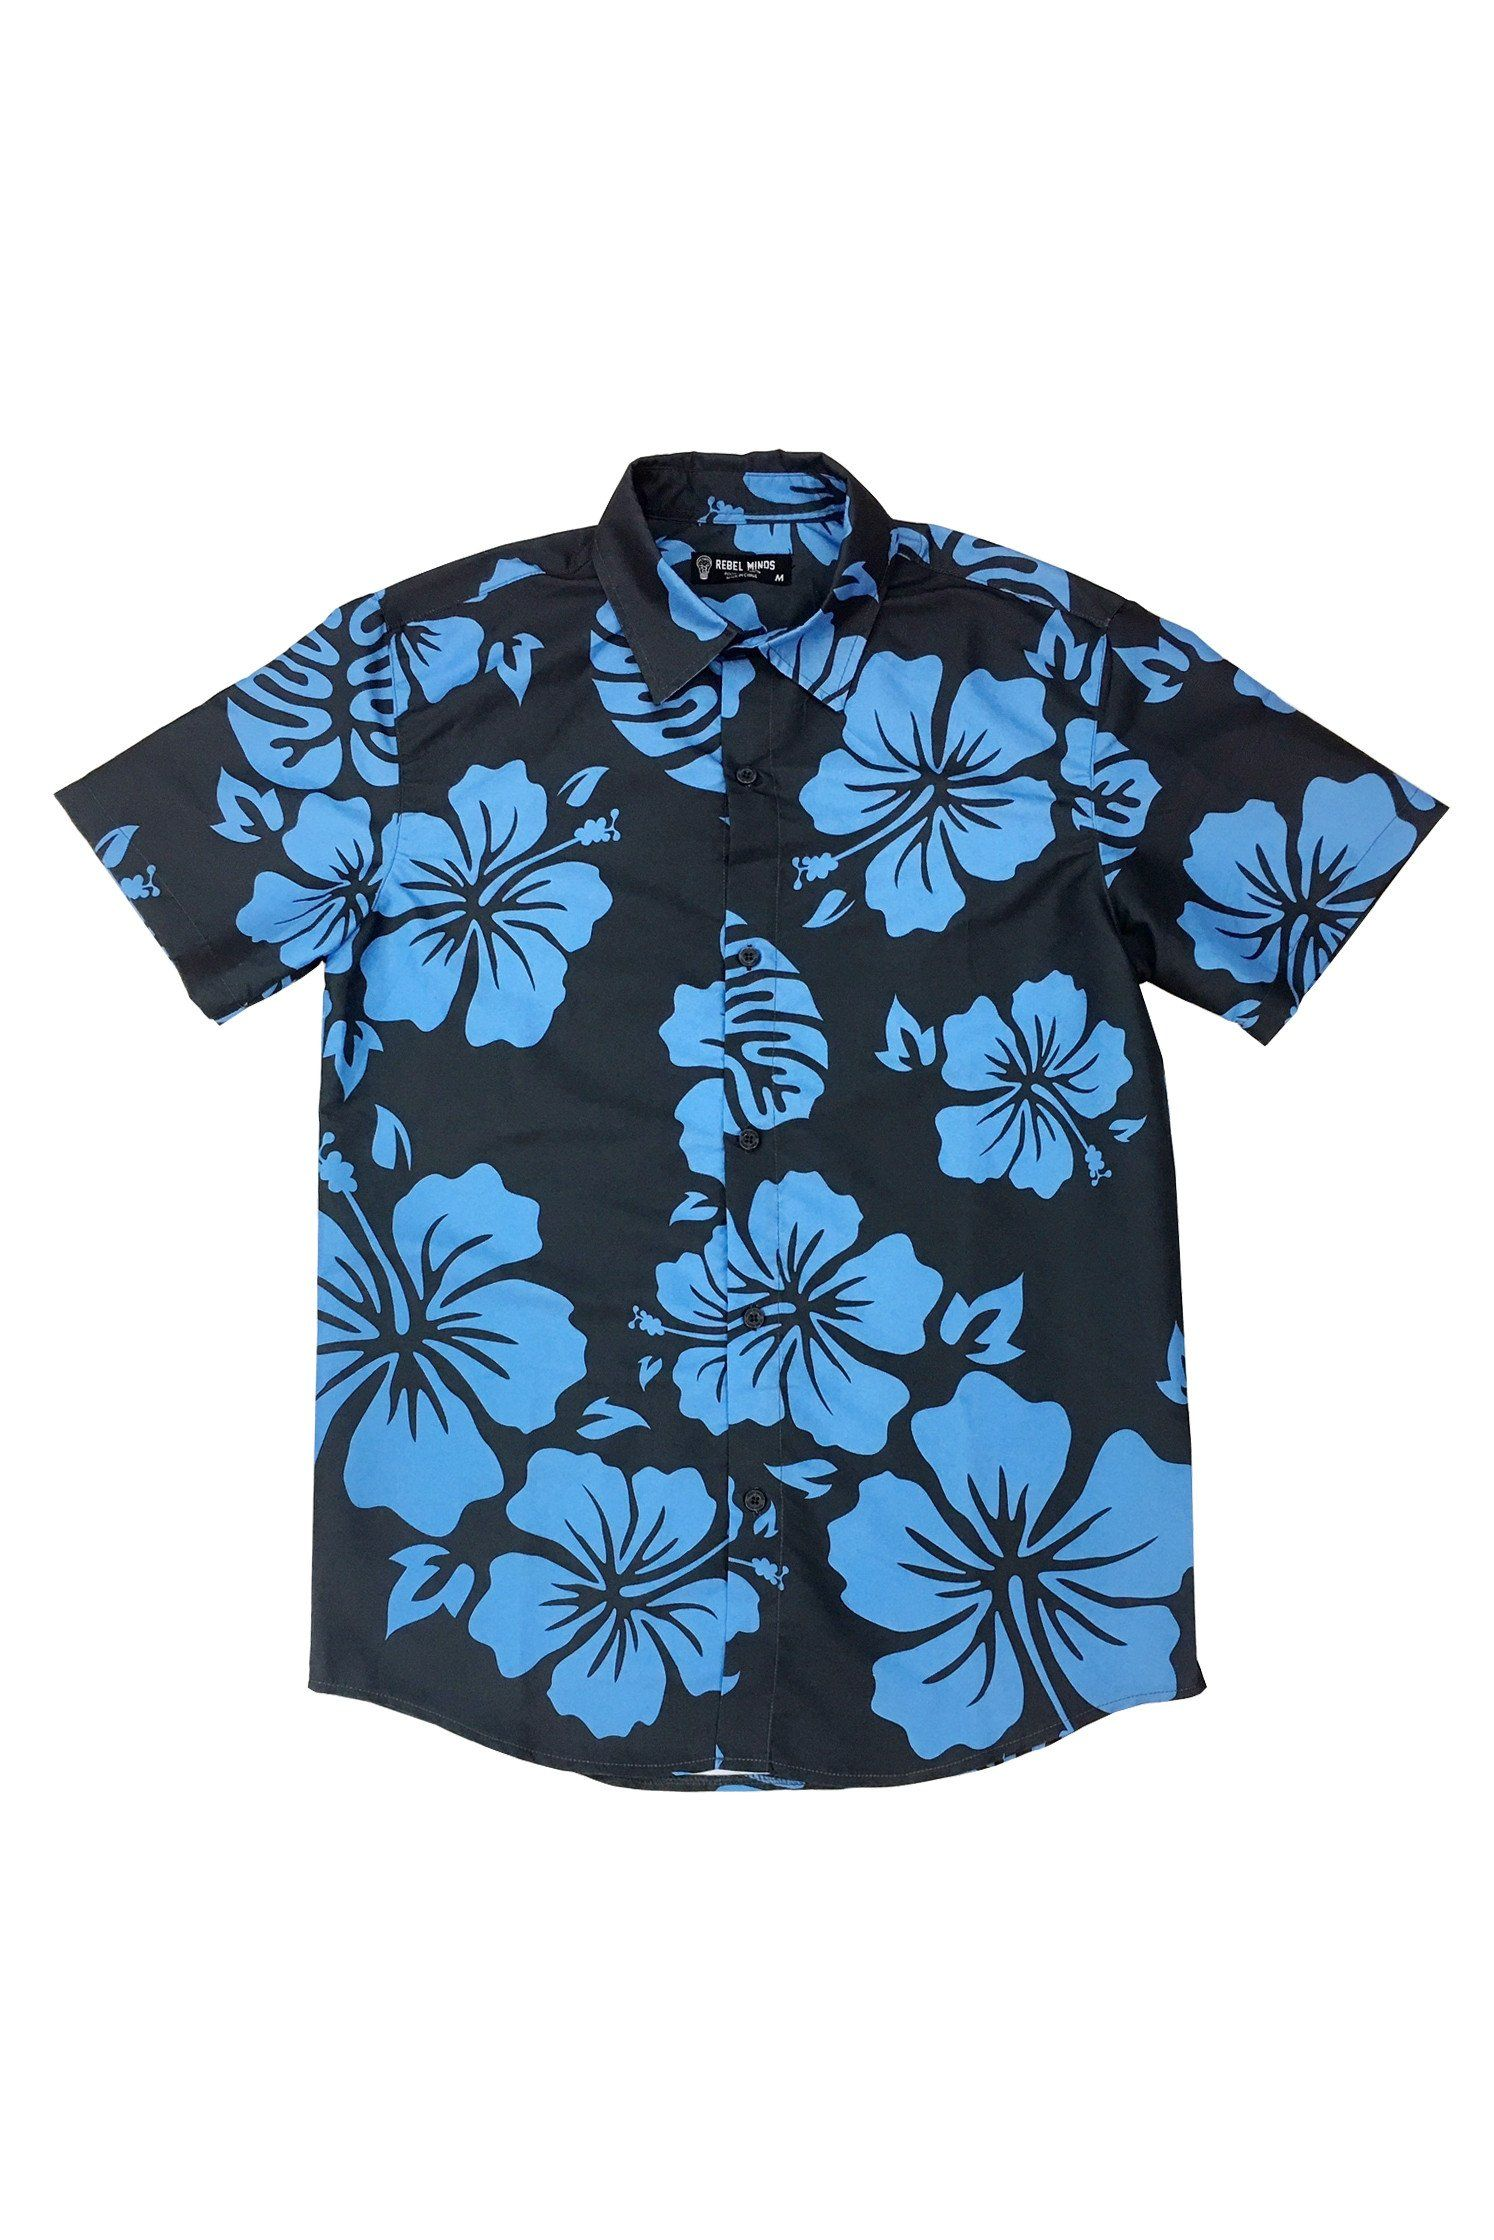 Royal Blue Hawaiian Flower Button Down Ss Products Pinterest